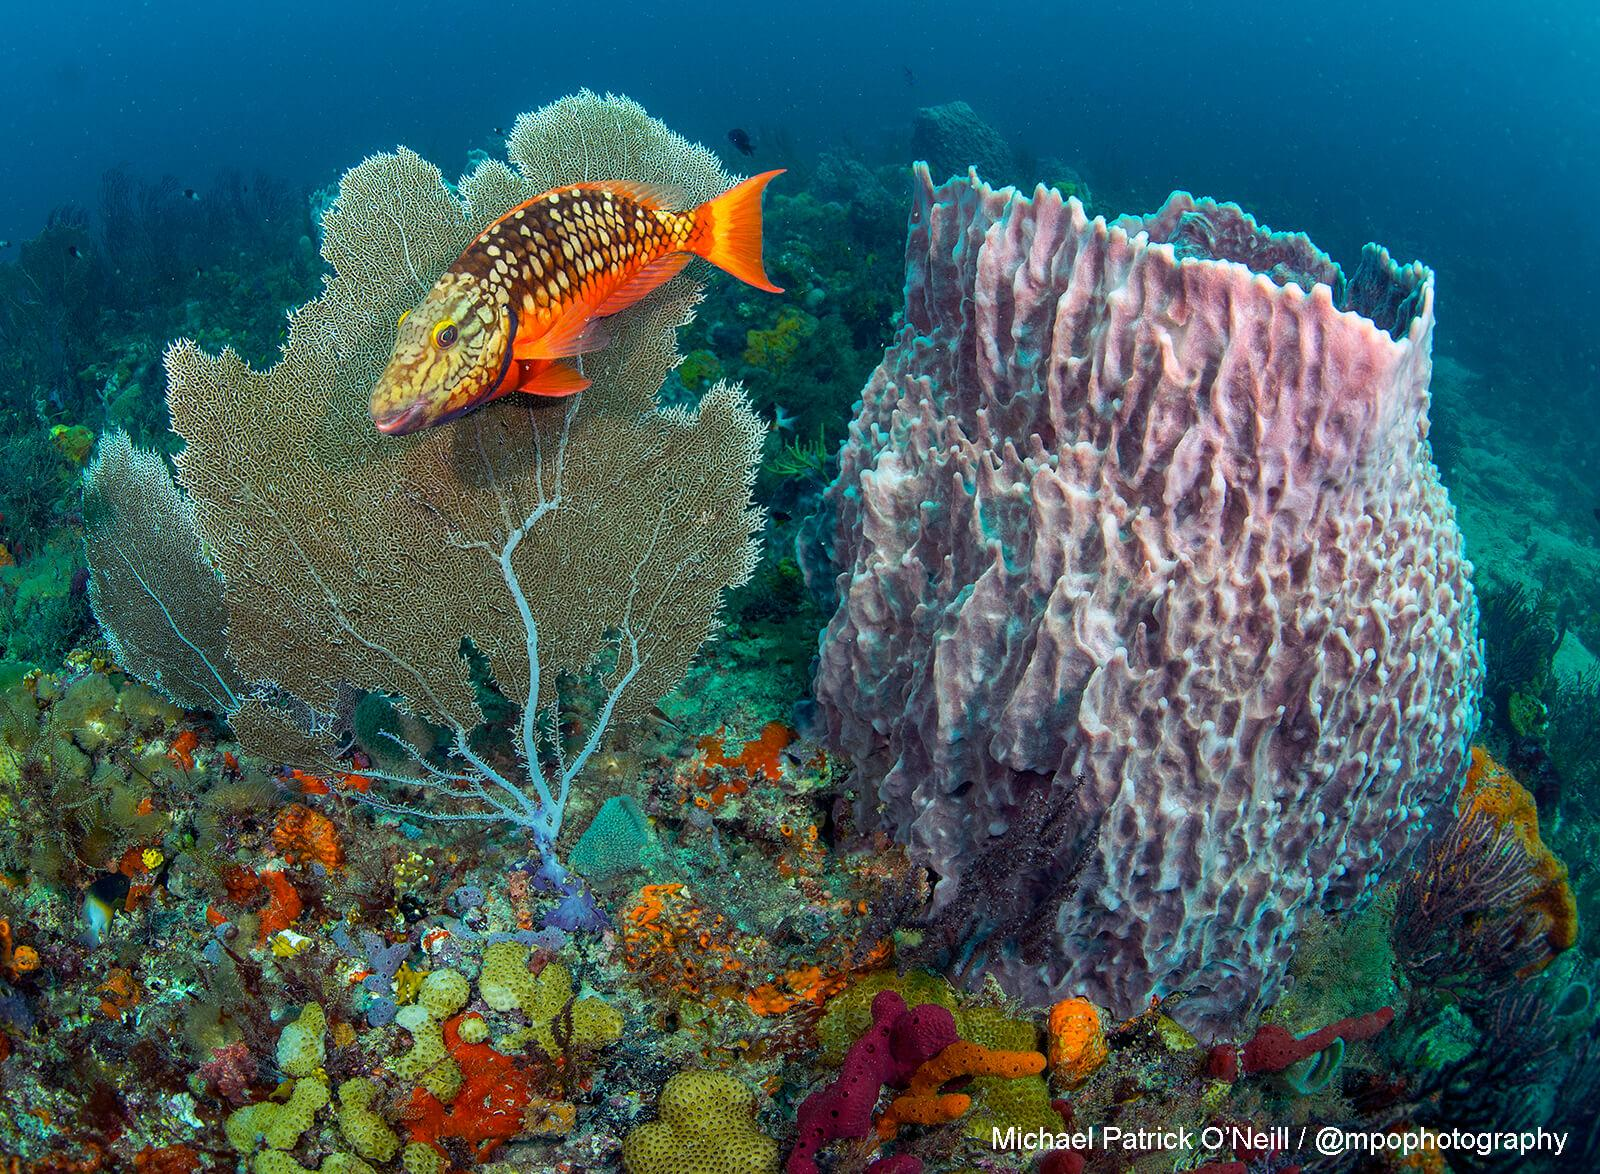 Coral Reef Florida. Underwater Photography by Michael Patrick-O'Neill